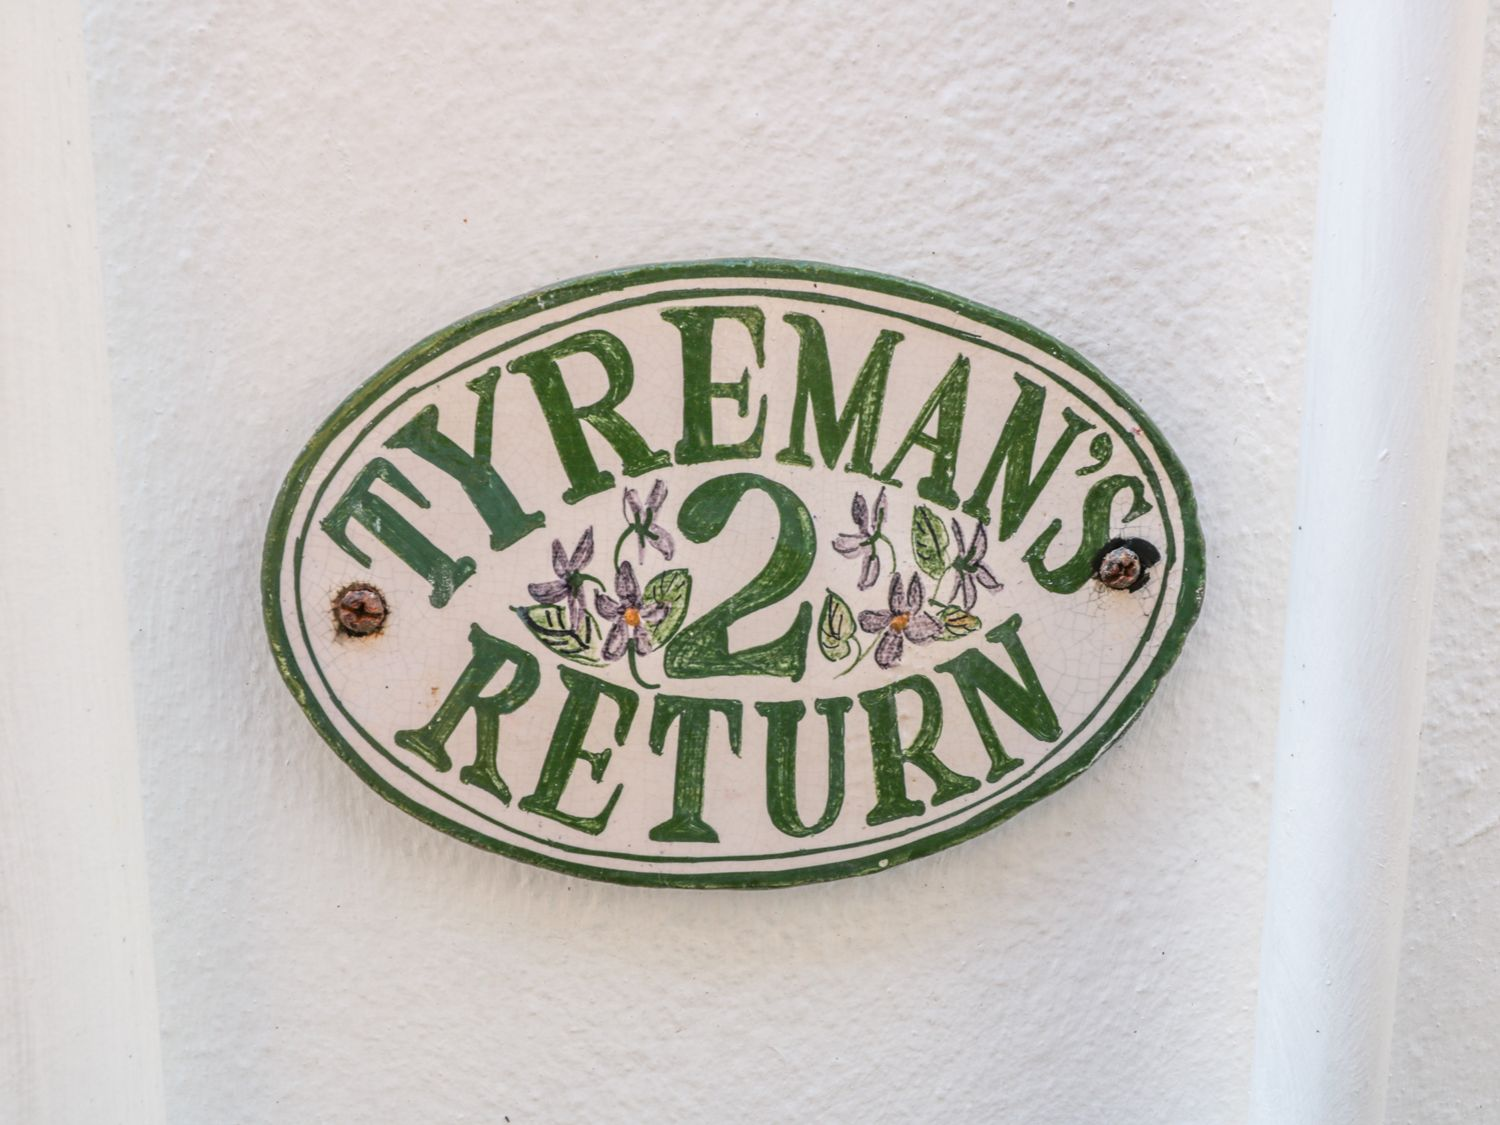 Tyremans Return in Whitby - sleeps 4 people